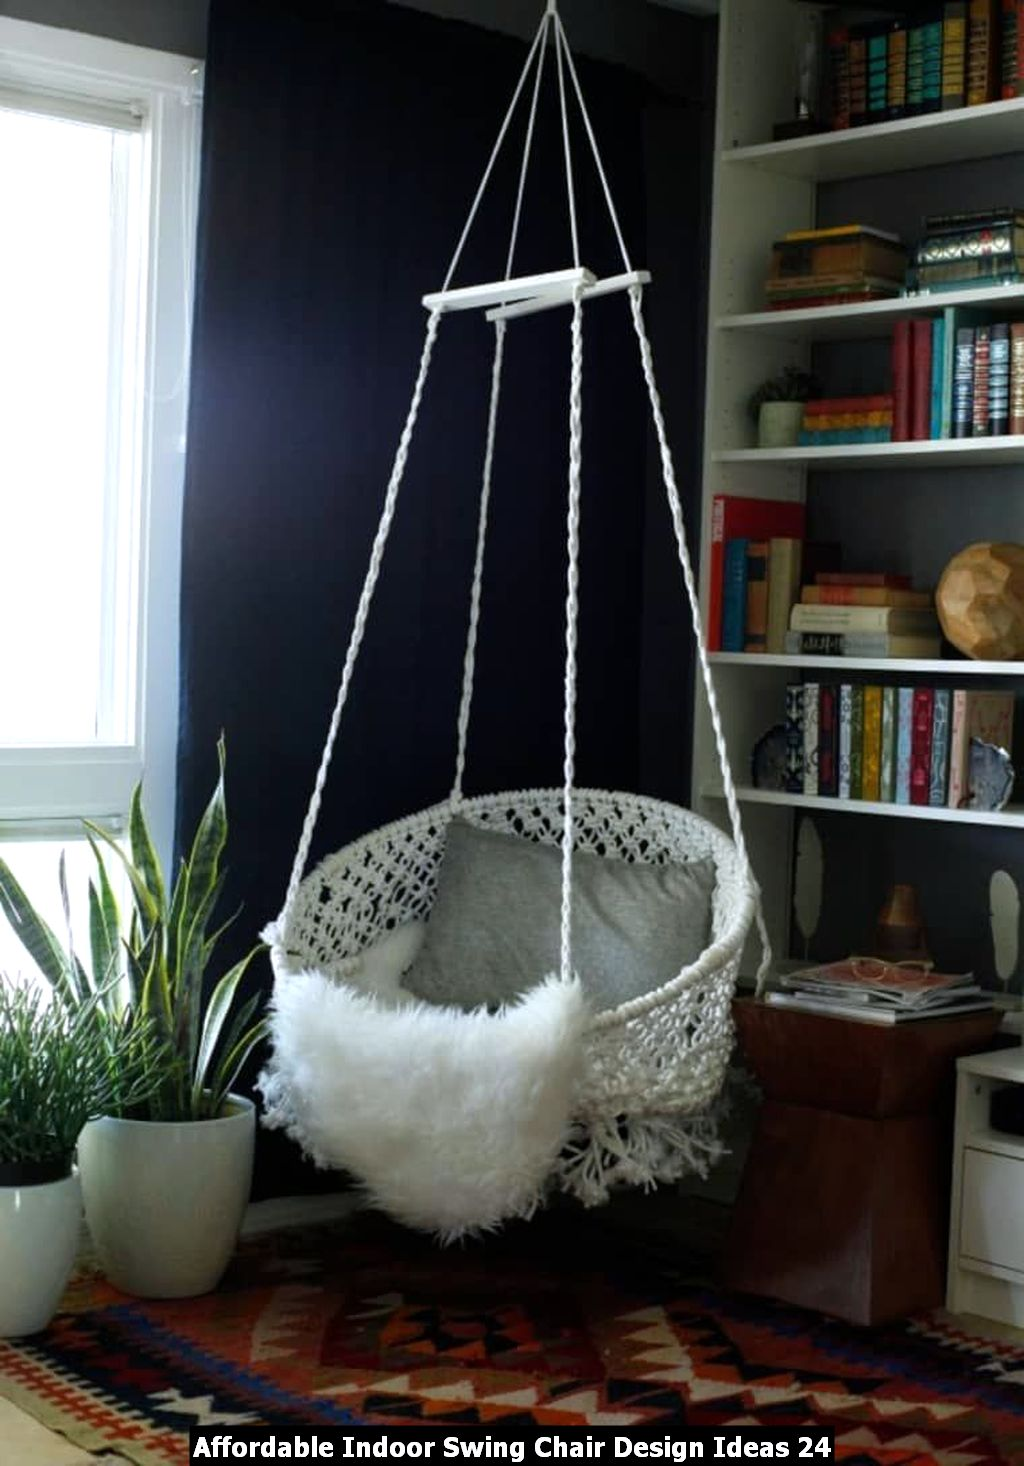 Affordable Indoor Swing Chair Design Ideas 24